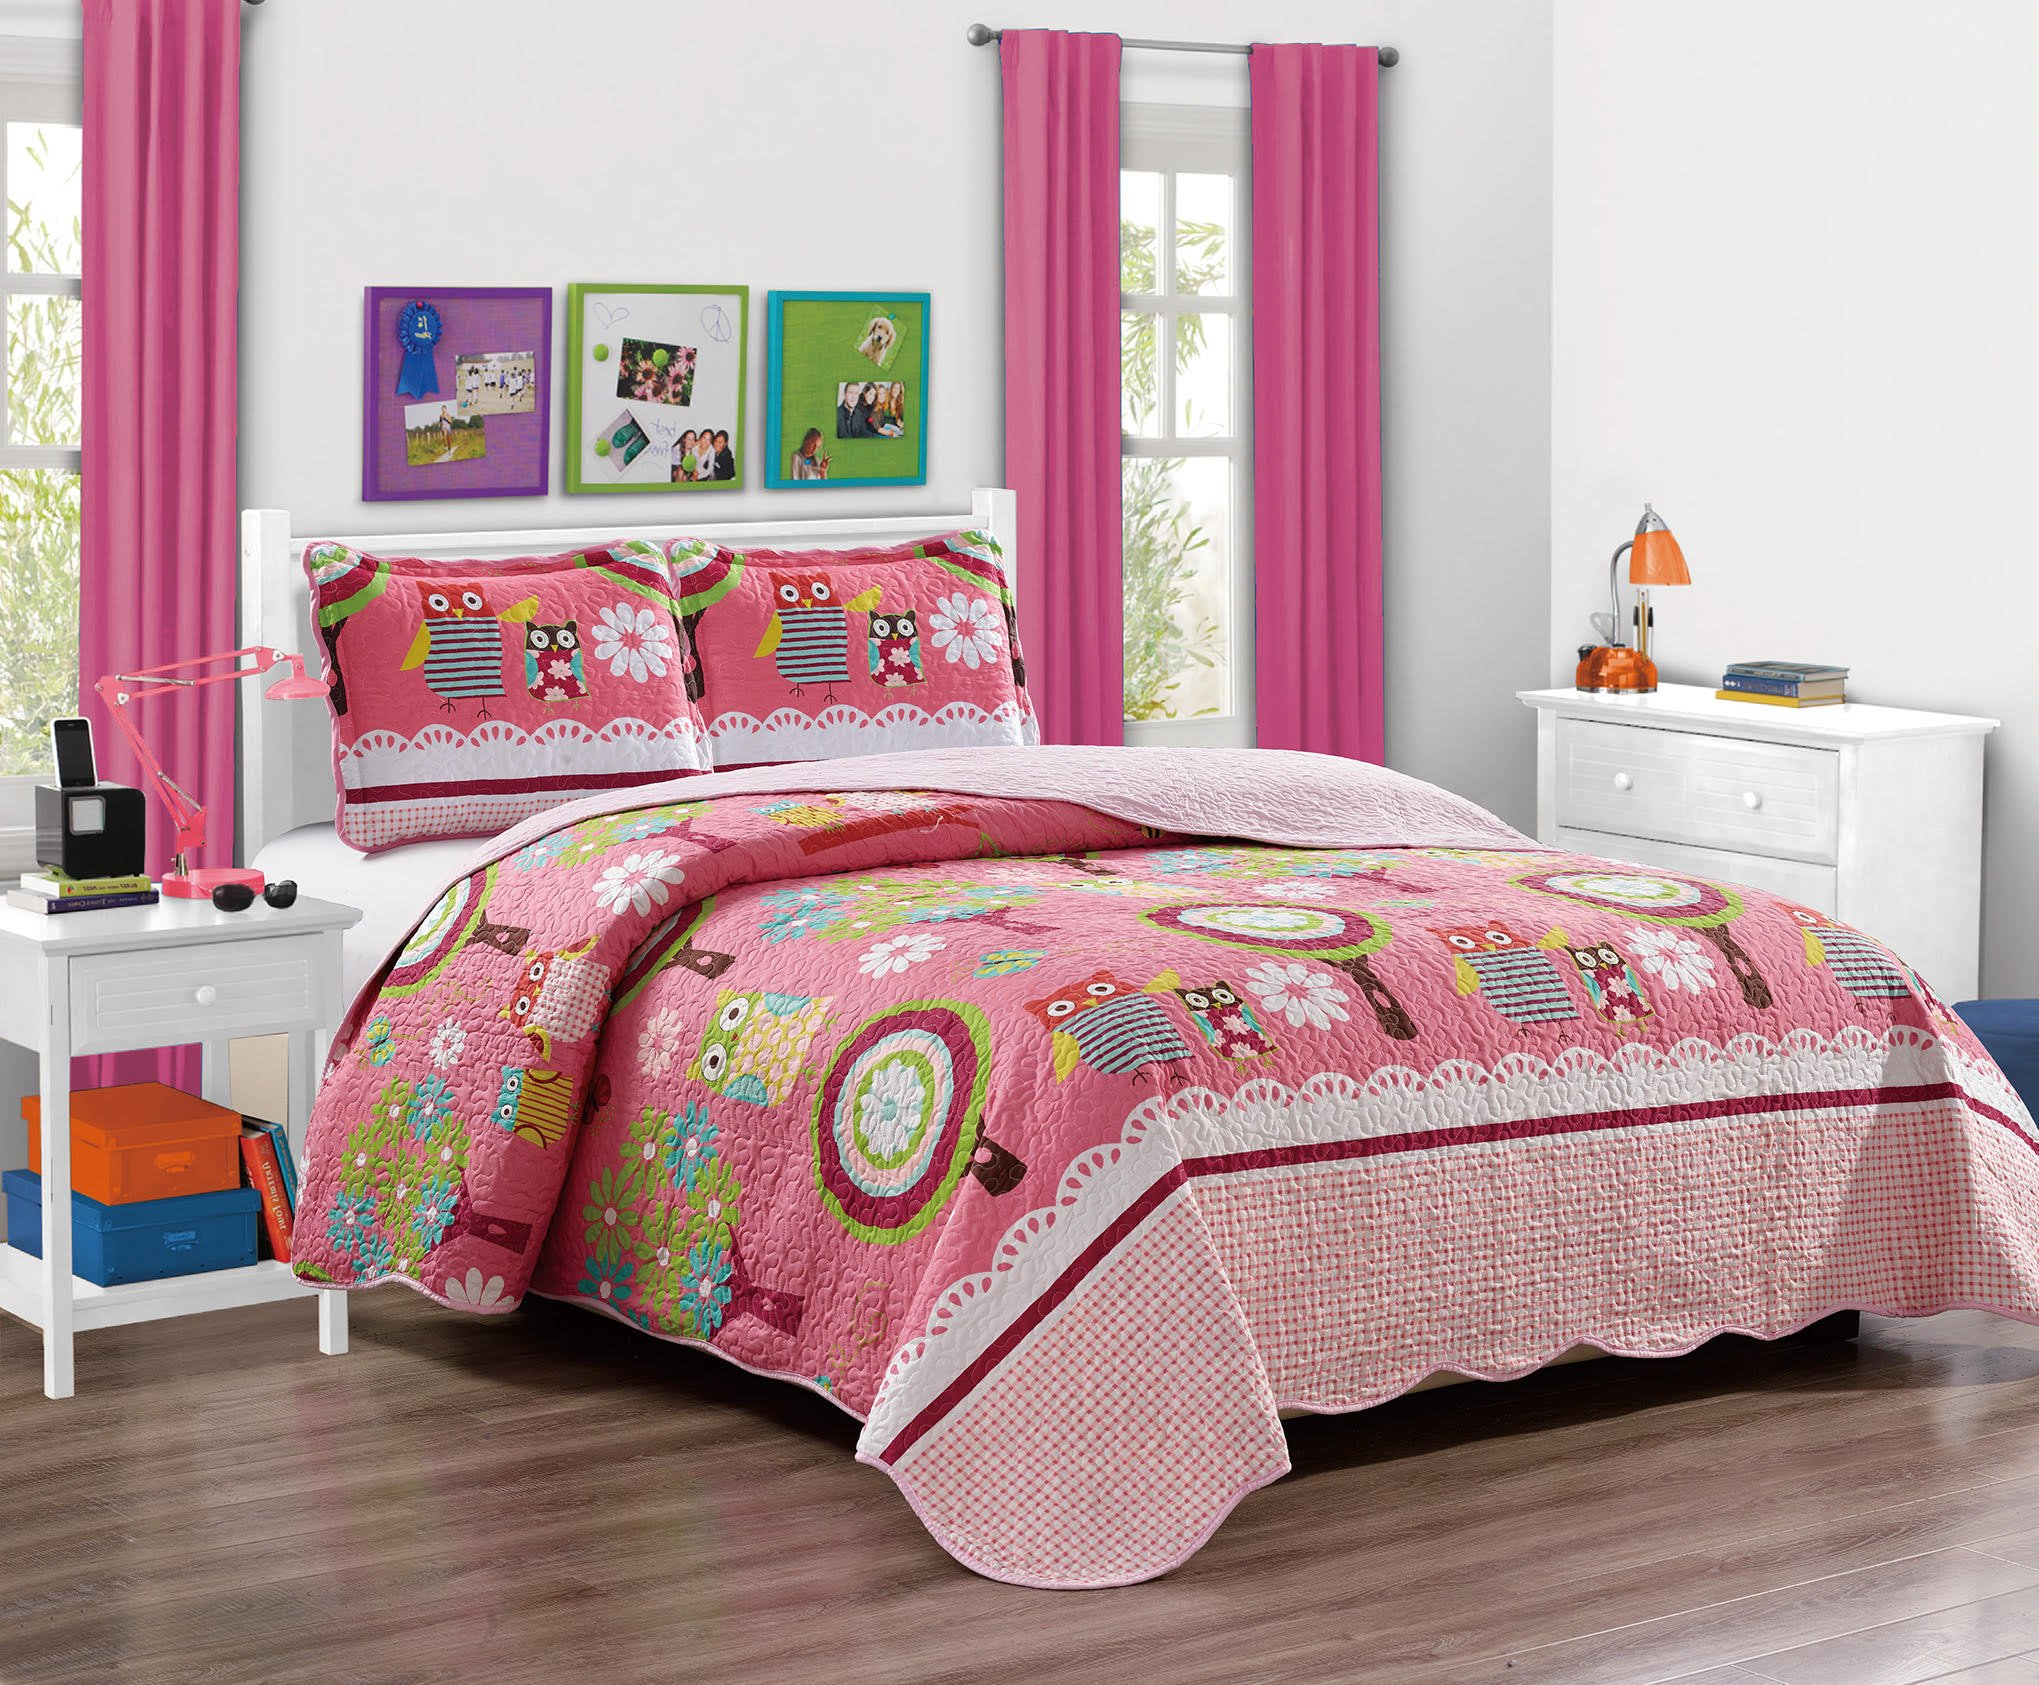 Mk Collection 3pc Bedspread Teens/girls Owl Pink New (Full)